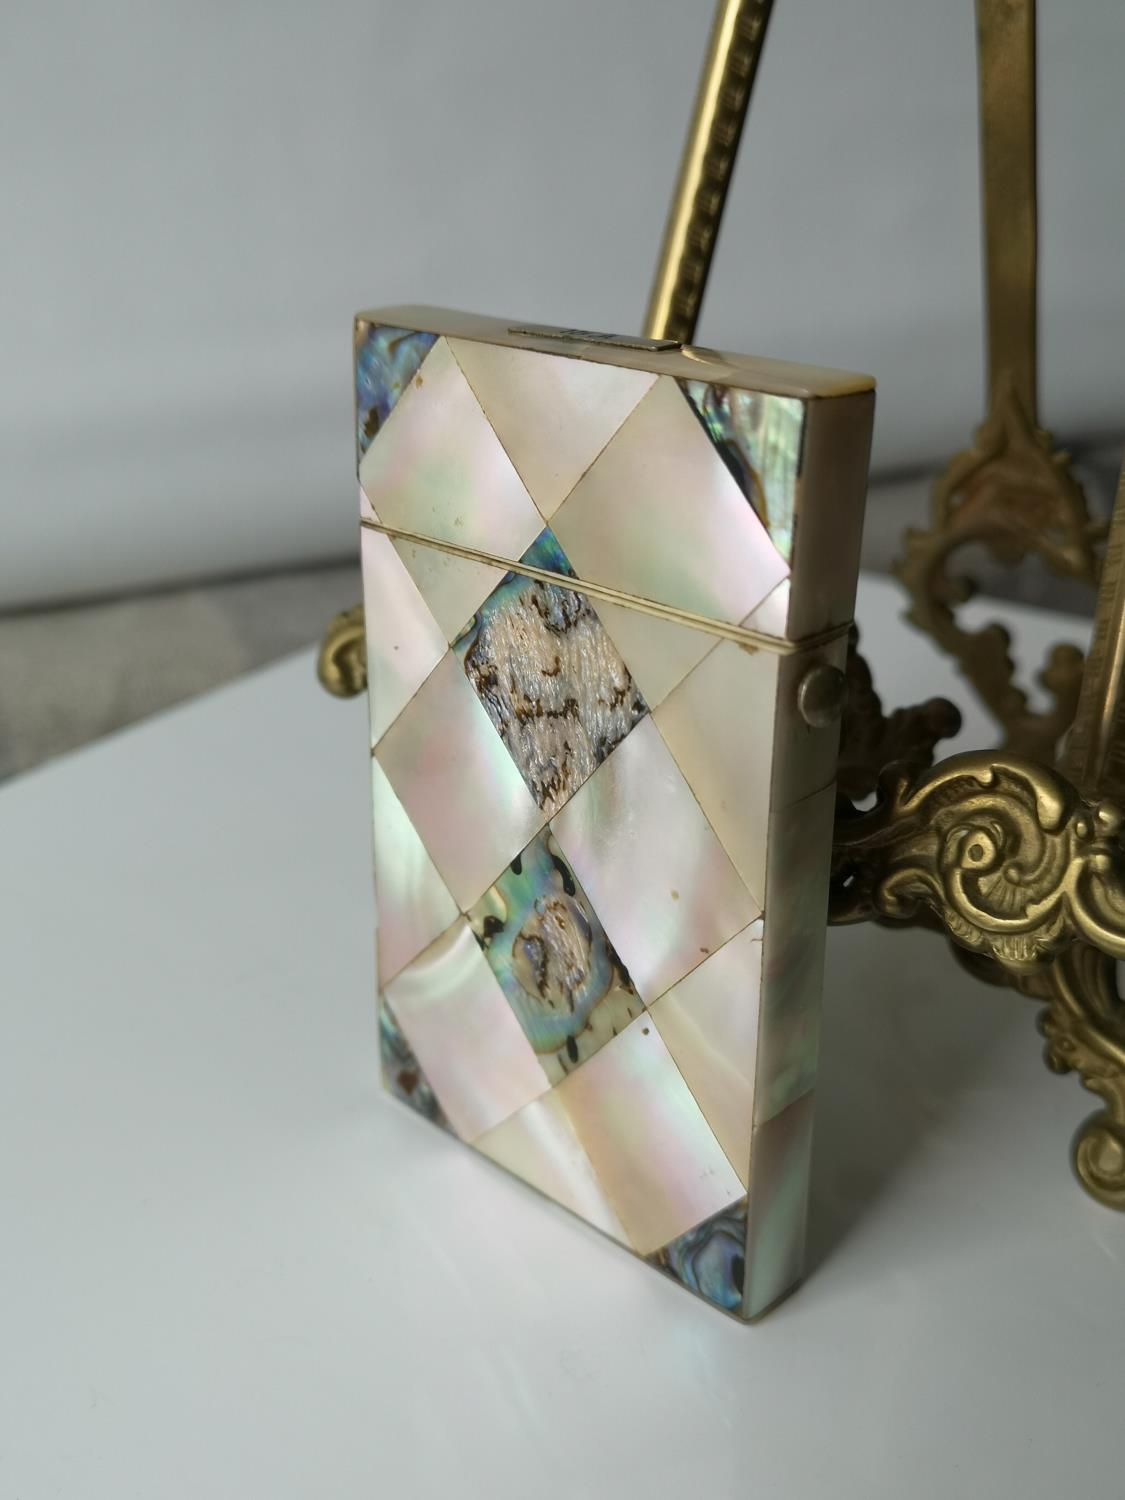 A Nice example of a 19th century mother of pearl & pauo shell card case. [9x5.5cm]